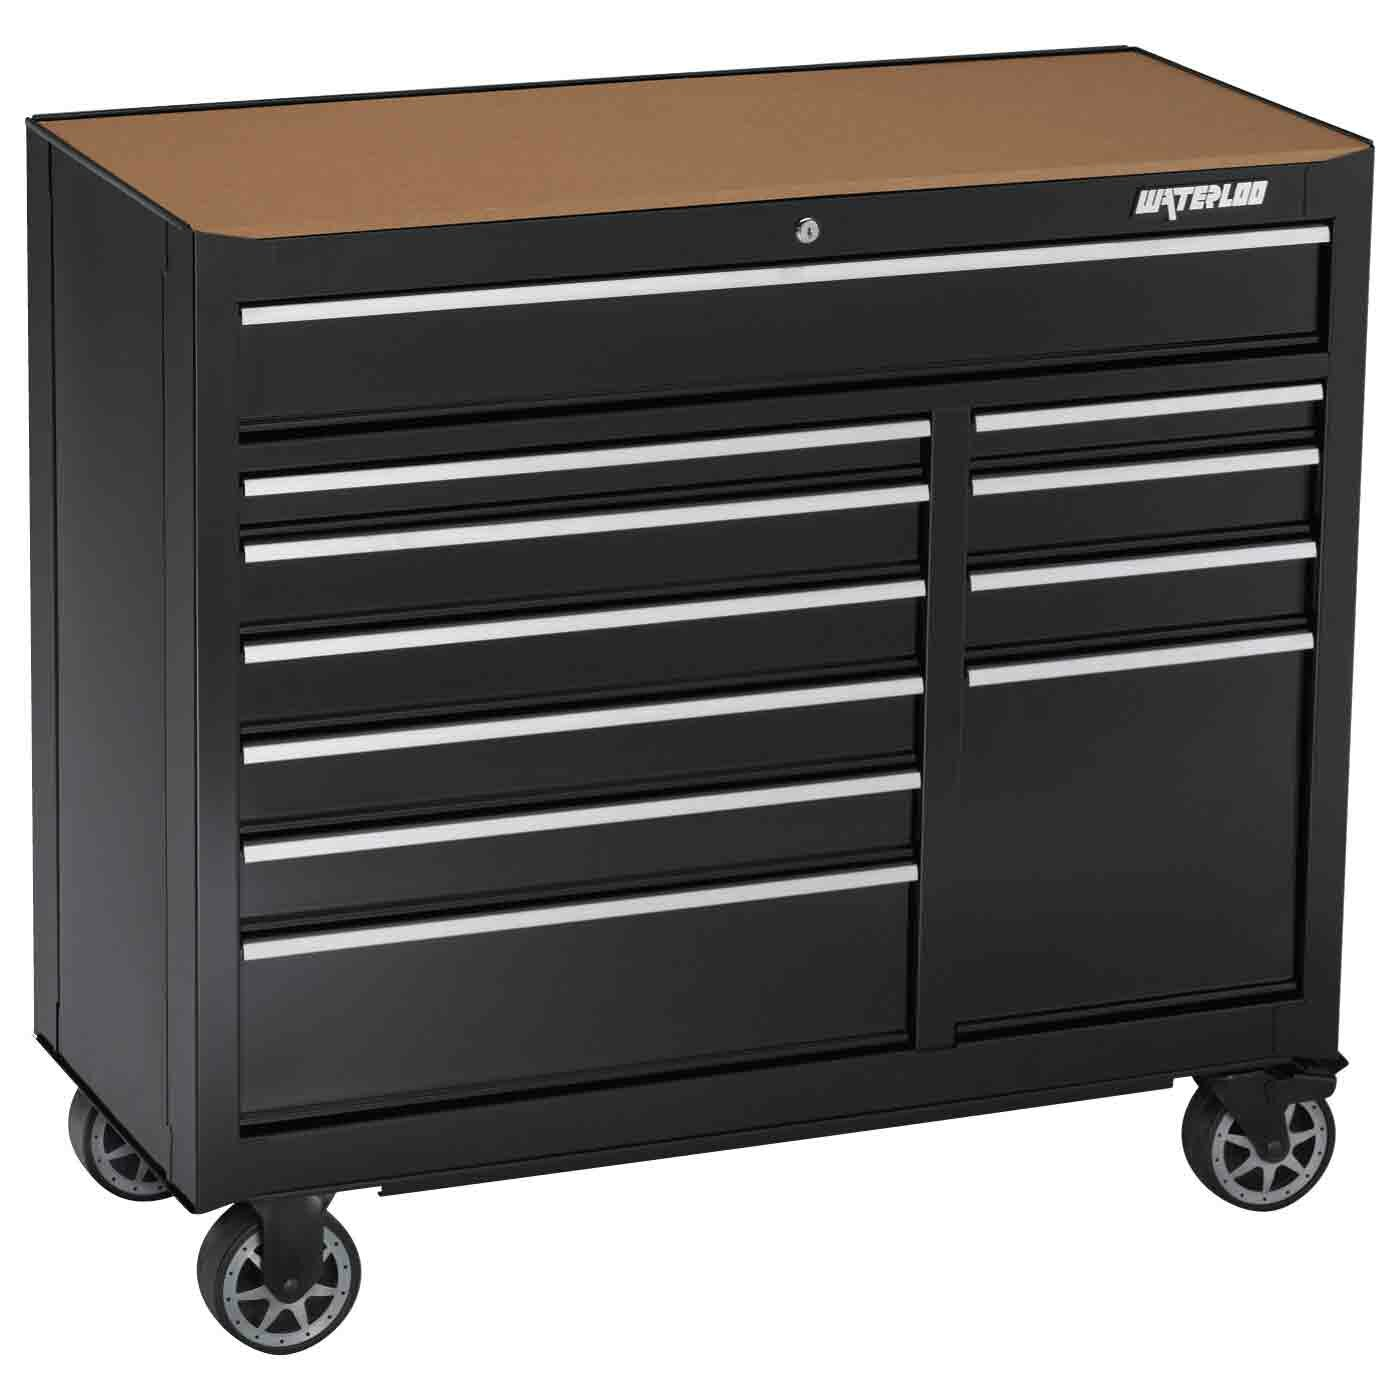 chest shopping compare professional cabinet products nextag in drawer red pch prices at master tool waterloo box